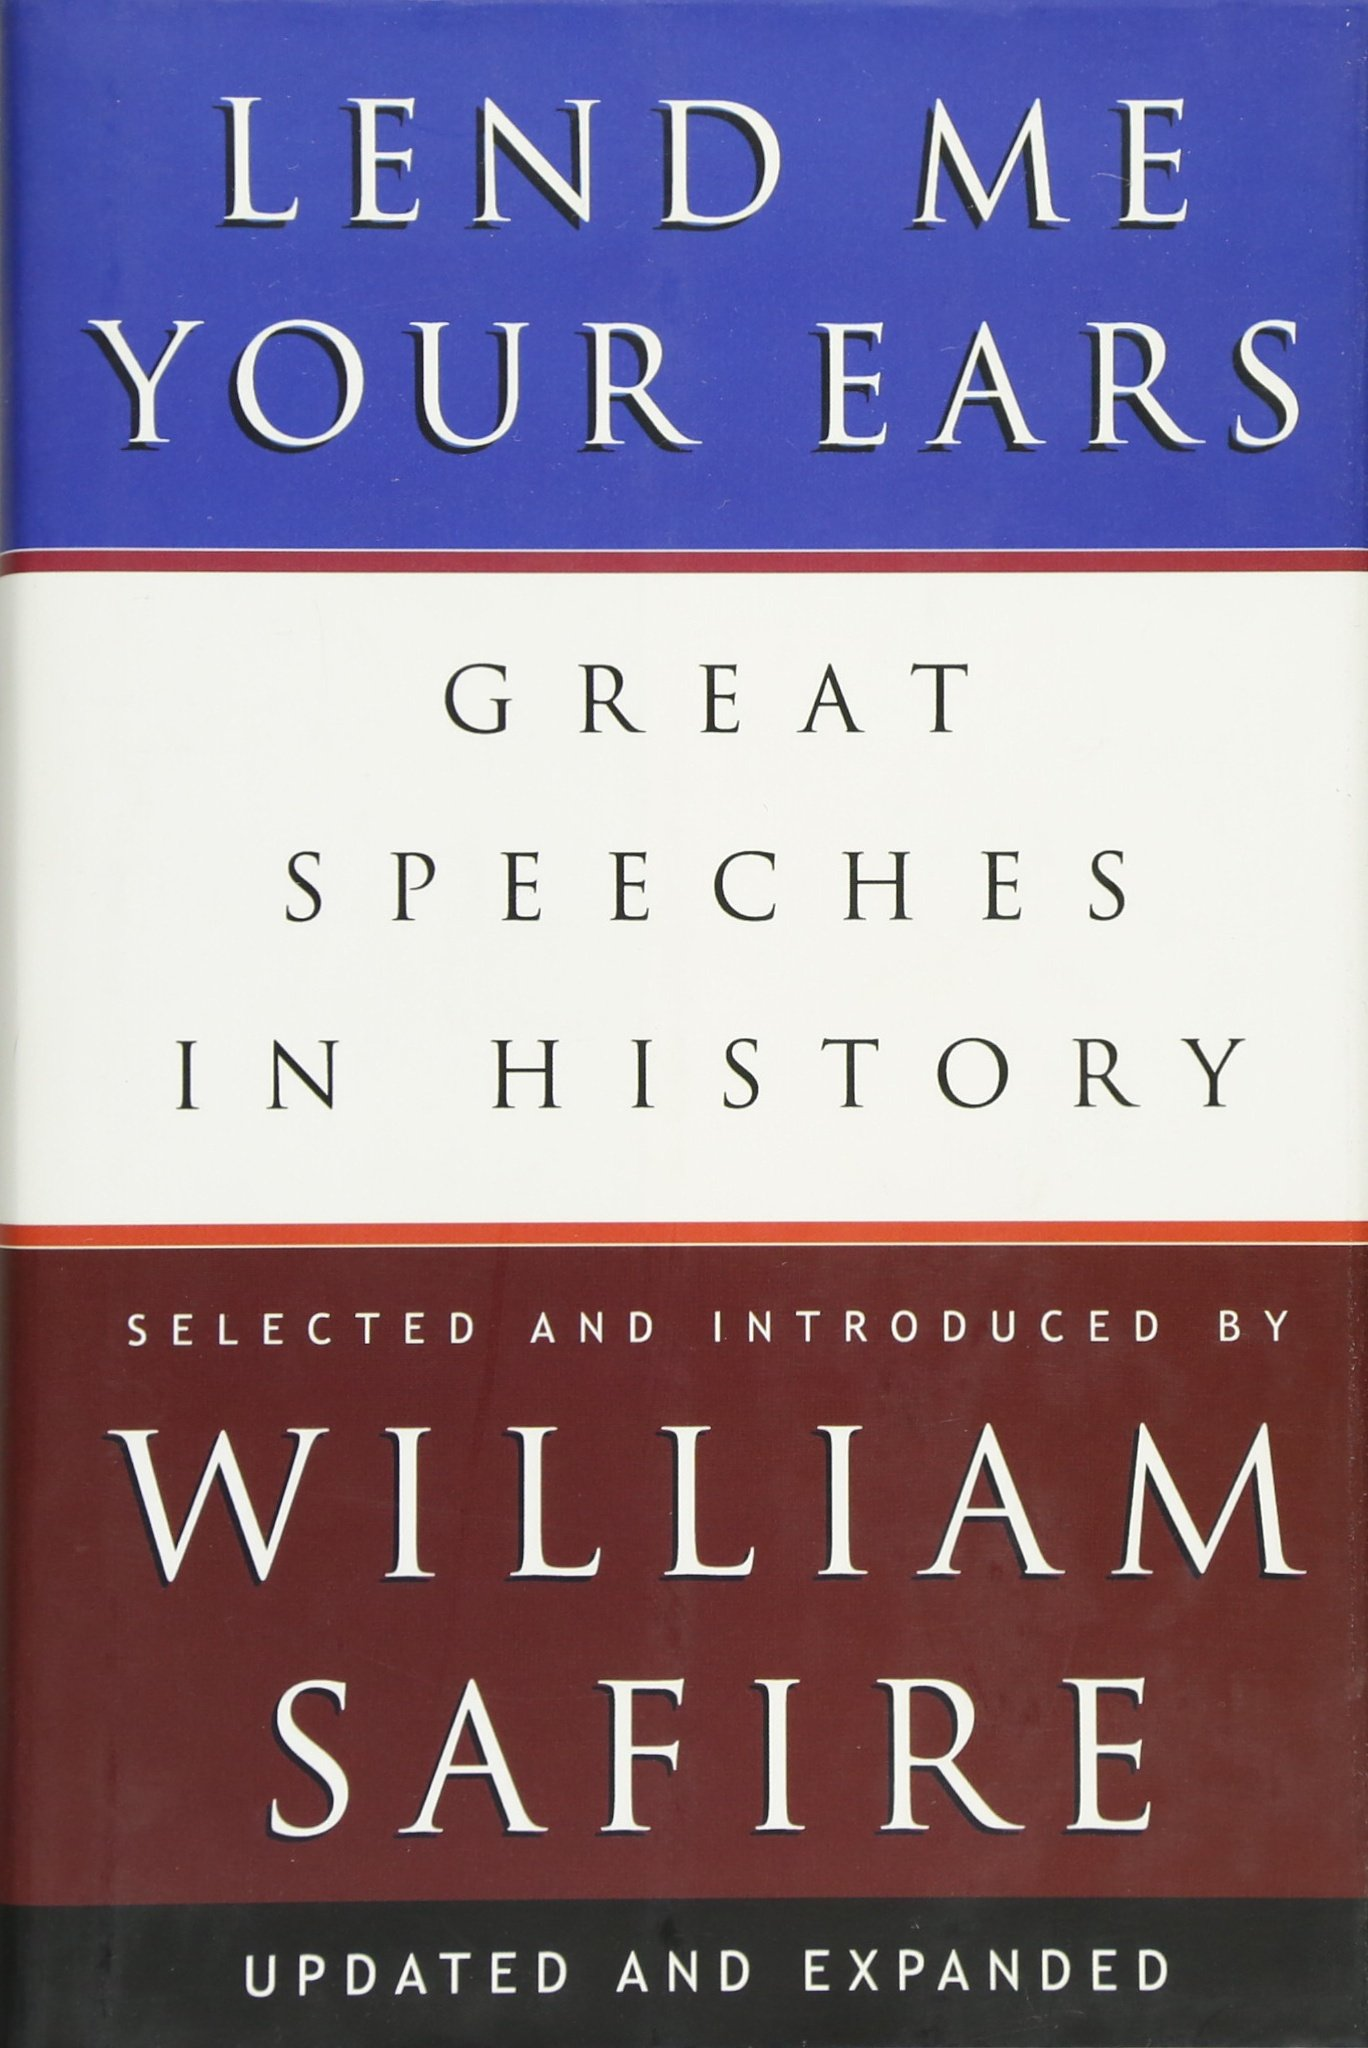 Lend Me Your Ears: Great Speeches in History (Updated and Expanded Edition) by William Safire